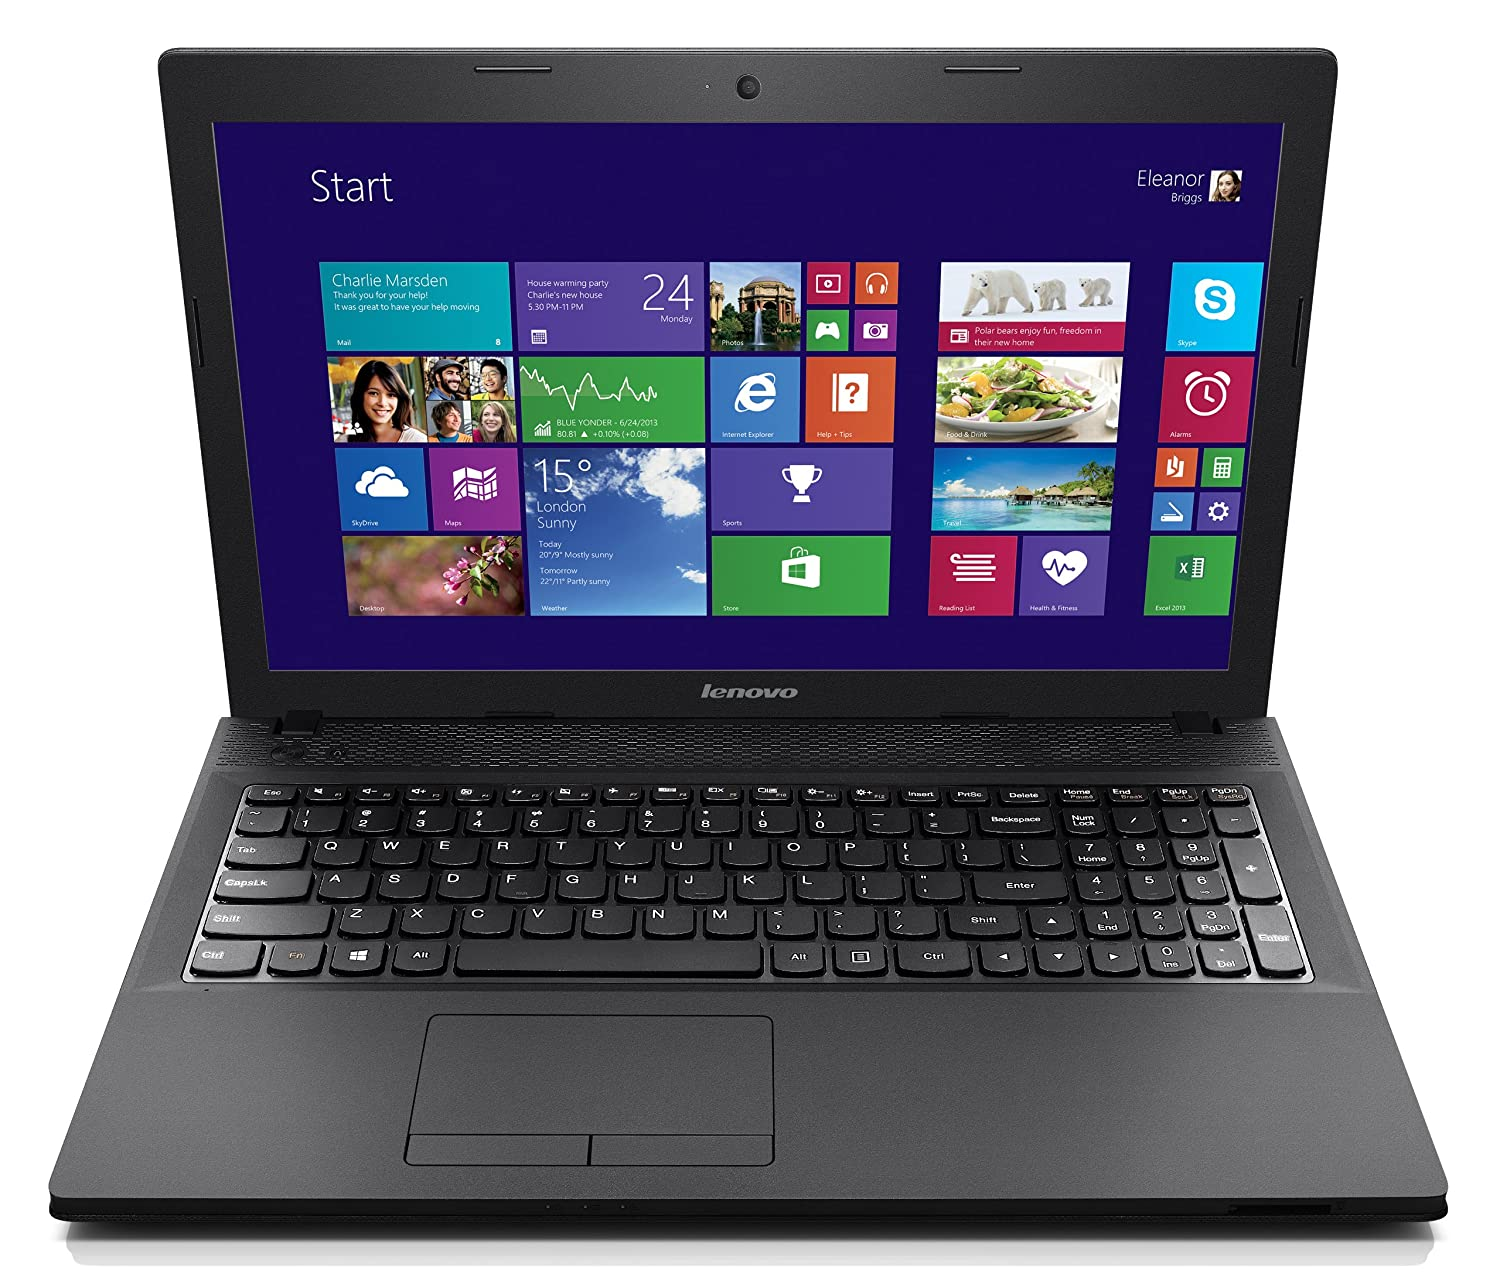 Lenovo IdeaPad G510 59406740 15.6-Inch Laptop Black